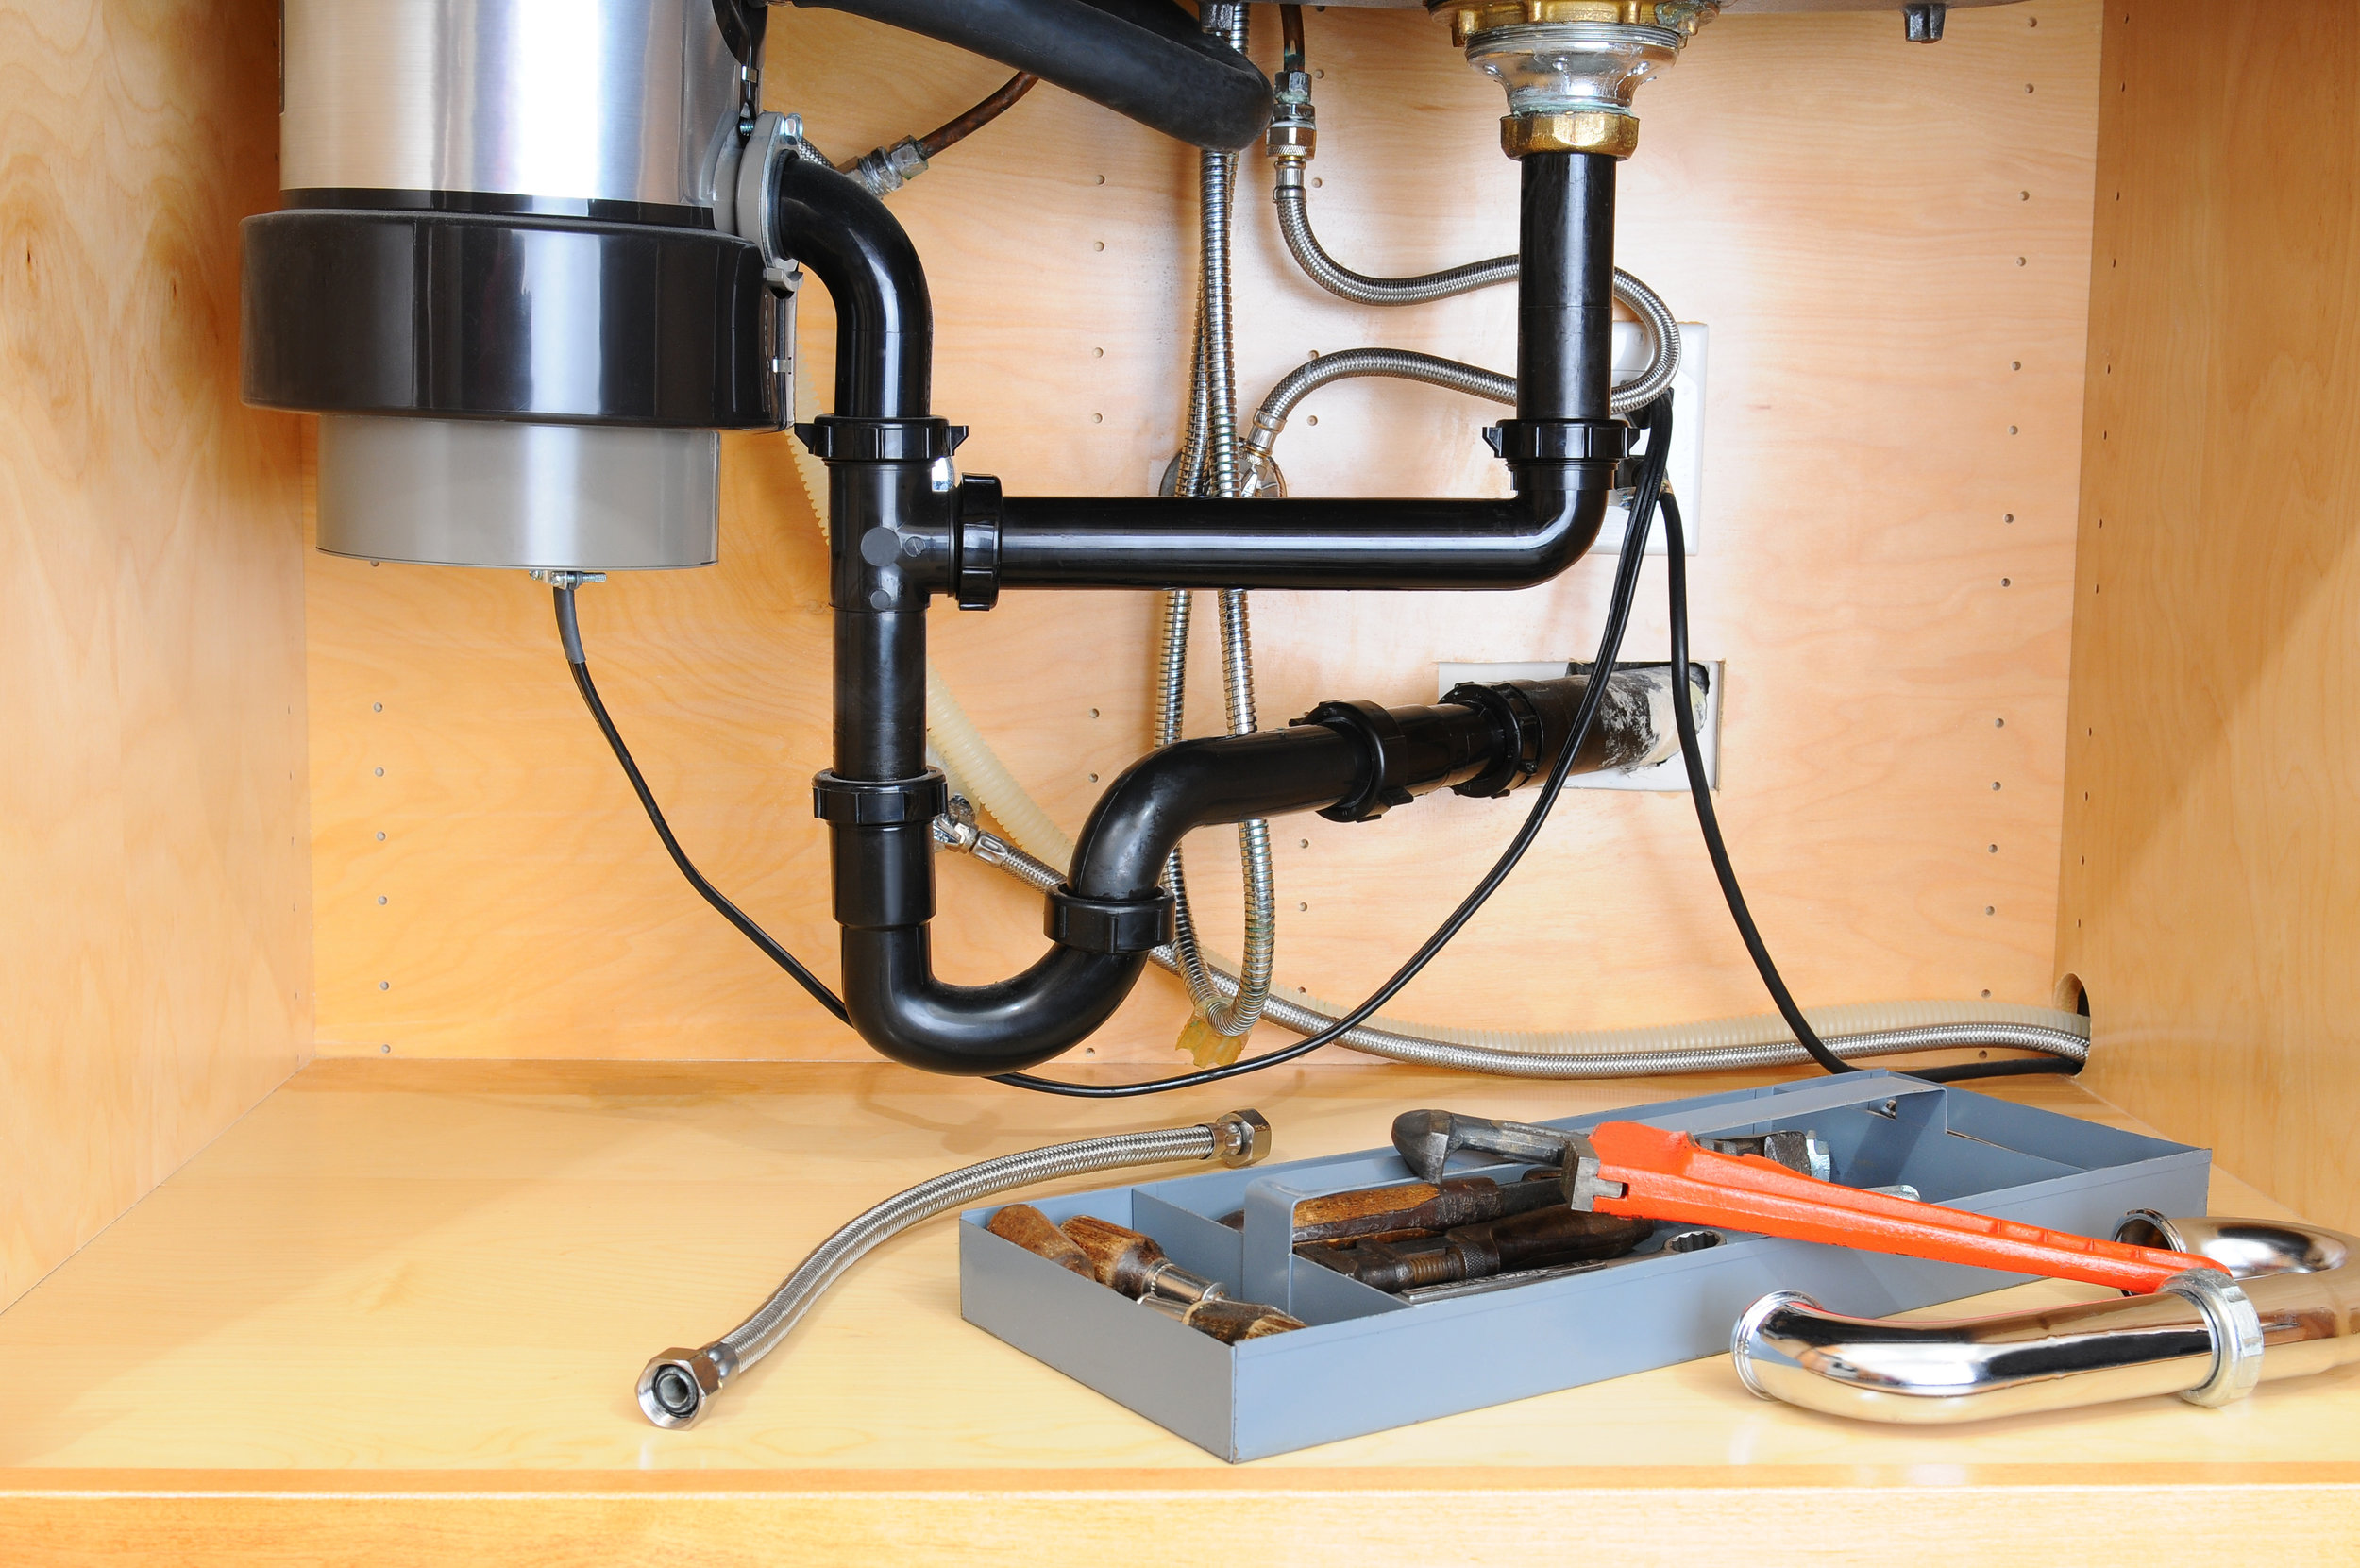 Residential Garbage Disposal Services in Raleigh, NC area